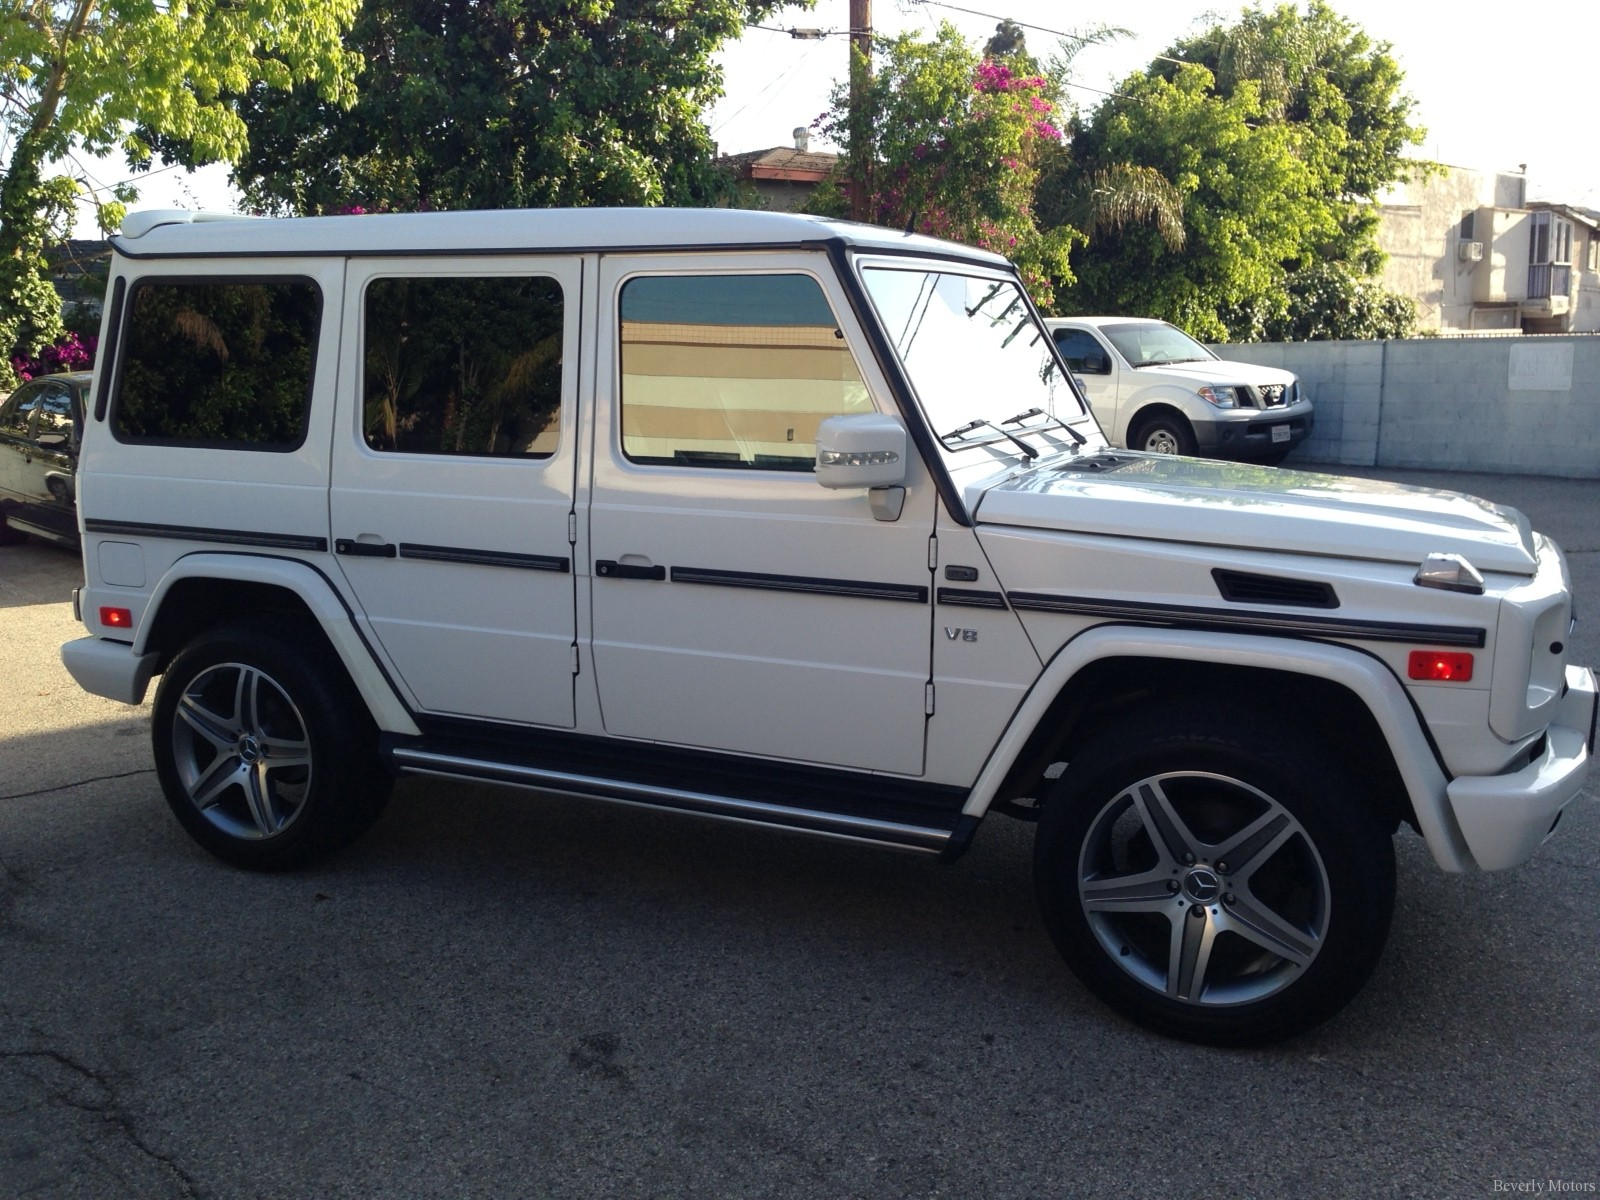 Lease car deals release date price and specs for Mercedes benz g class for sale cheap